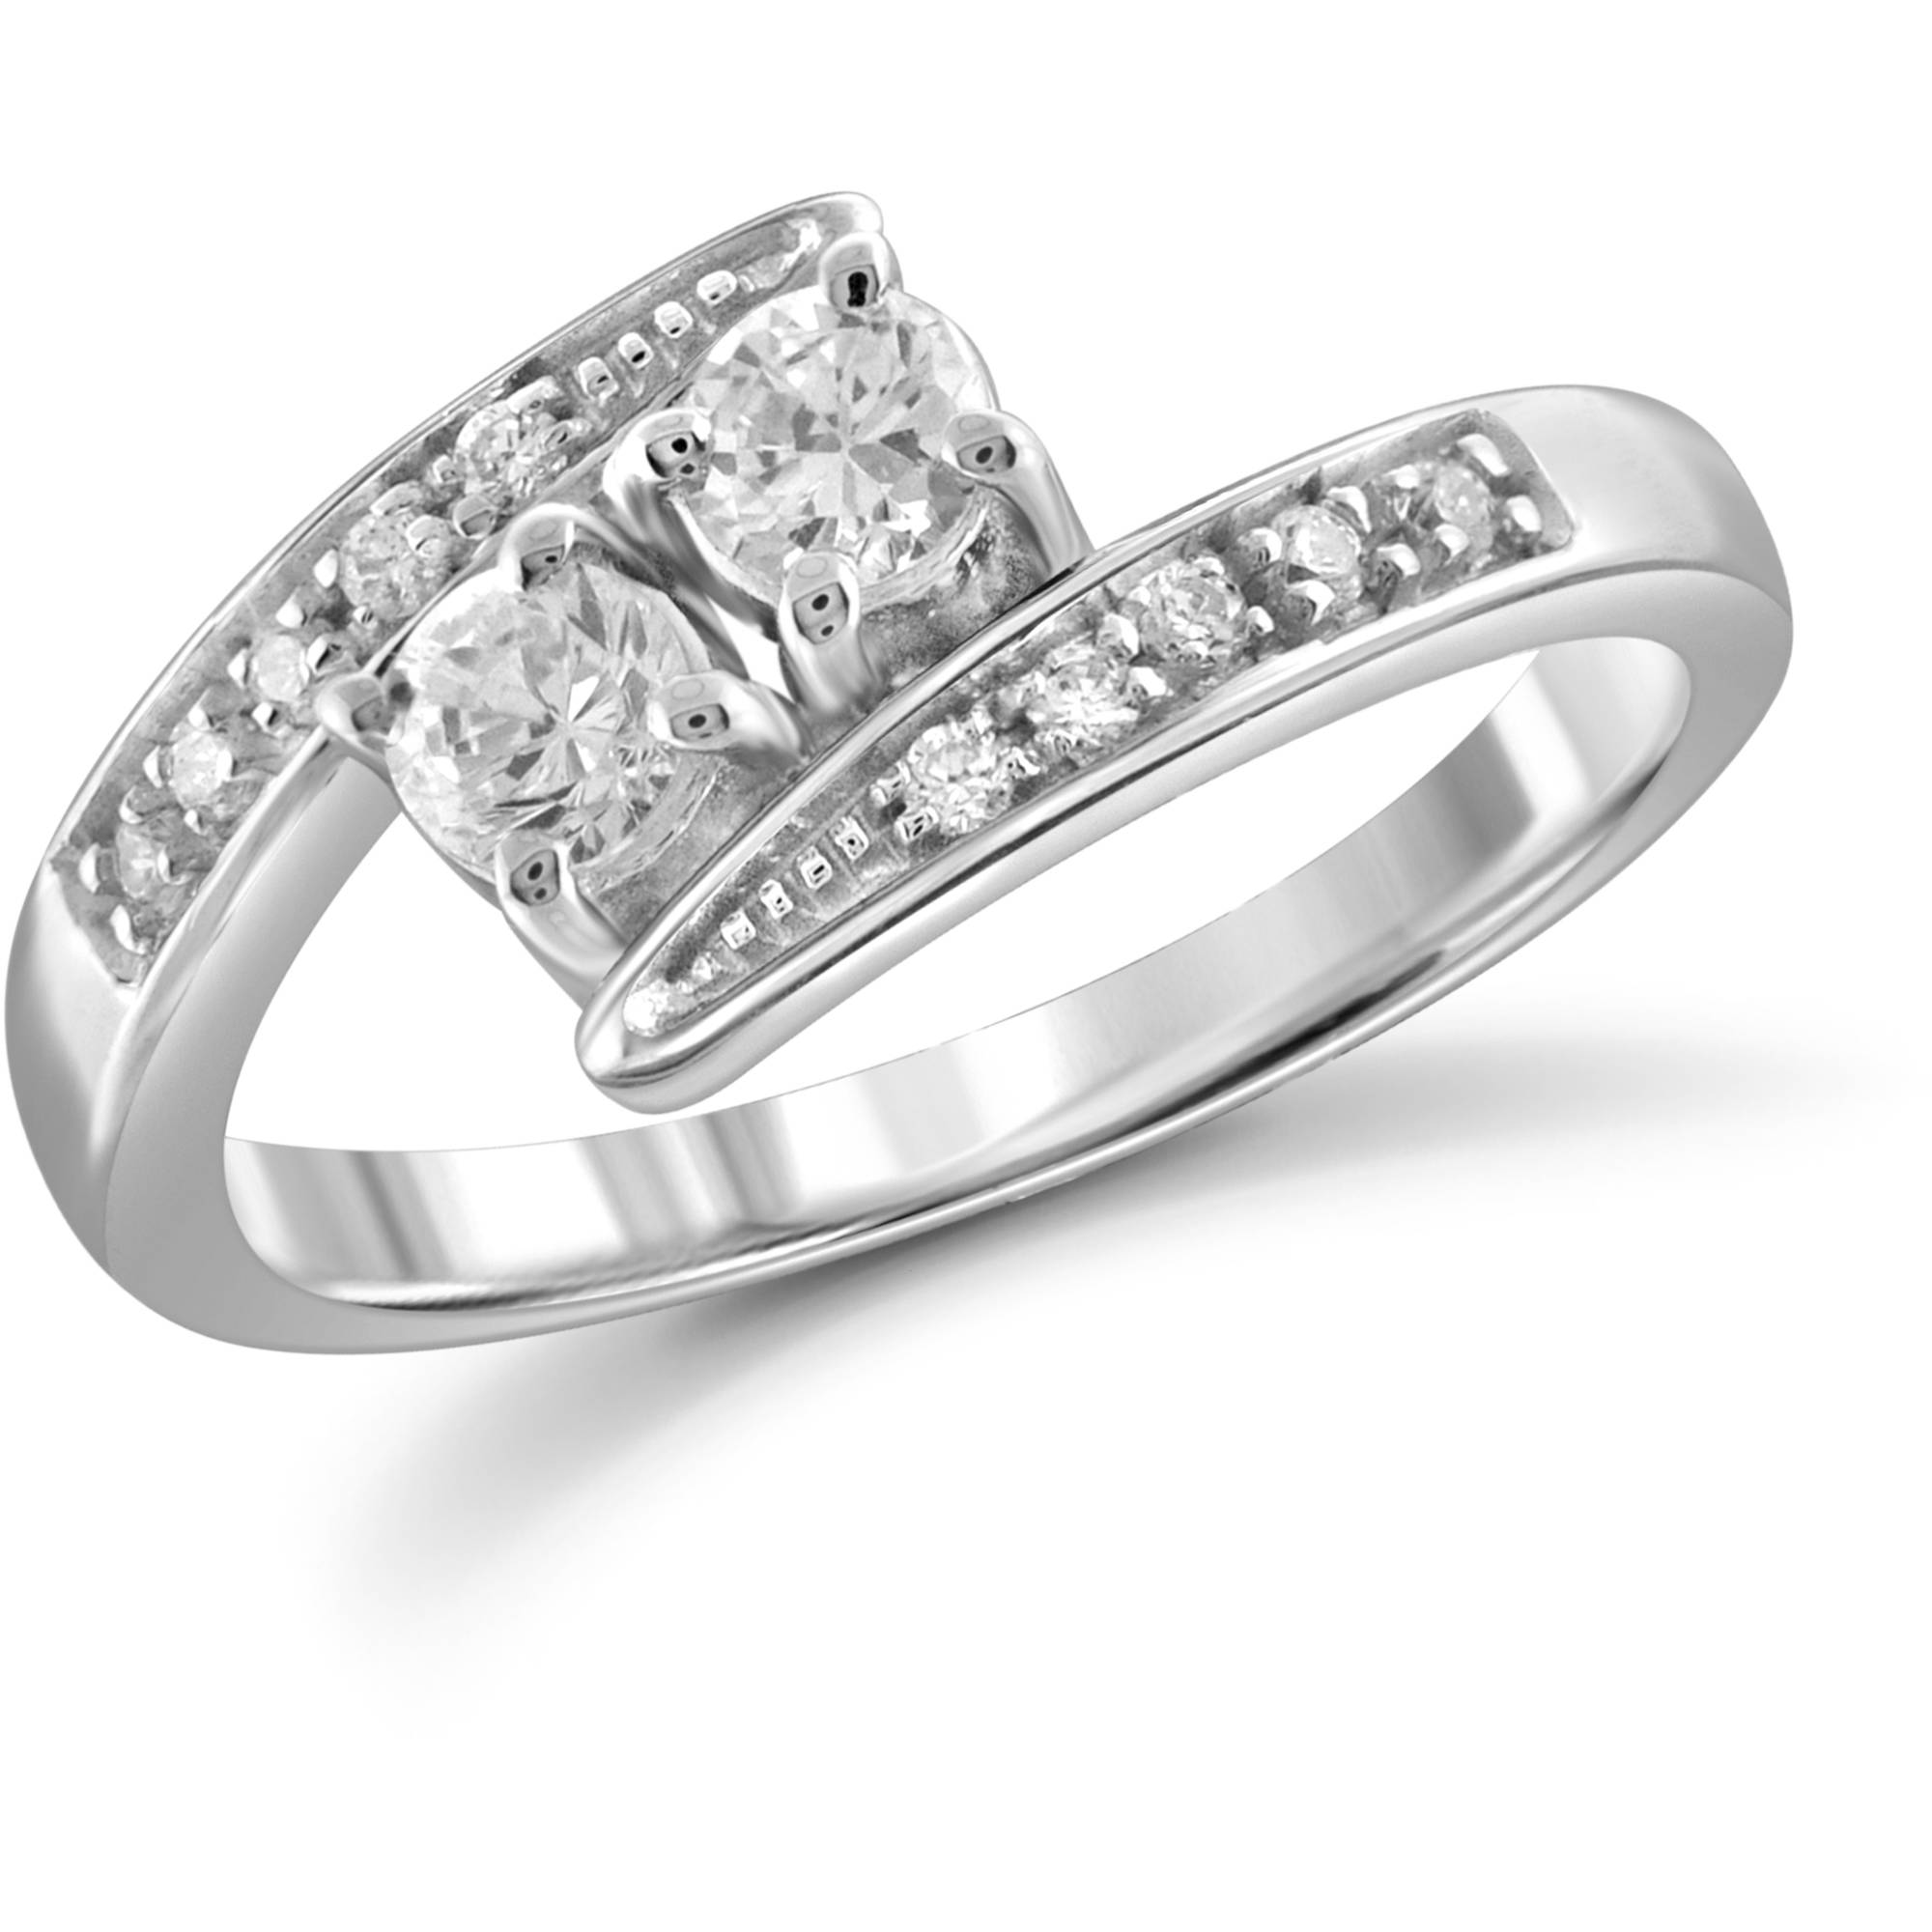 JewelersClub 1/2 Carat TW White Diamond 14Kt White Gold Two-Stone Engagement Ring